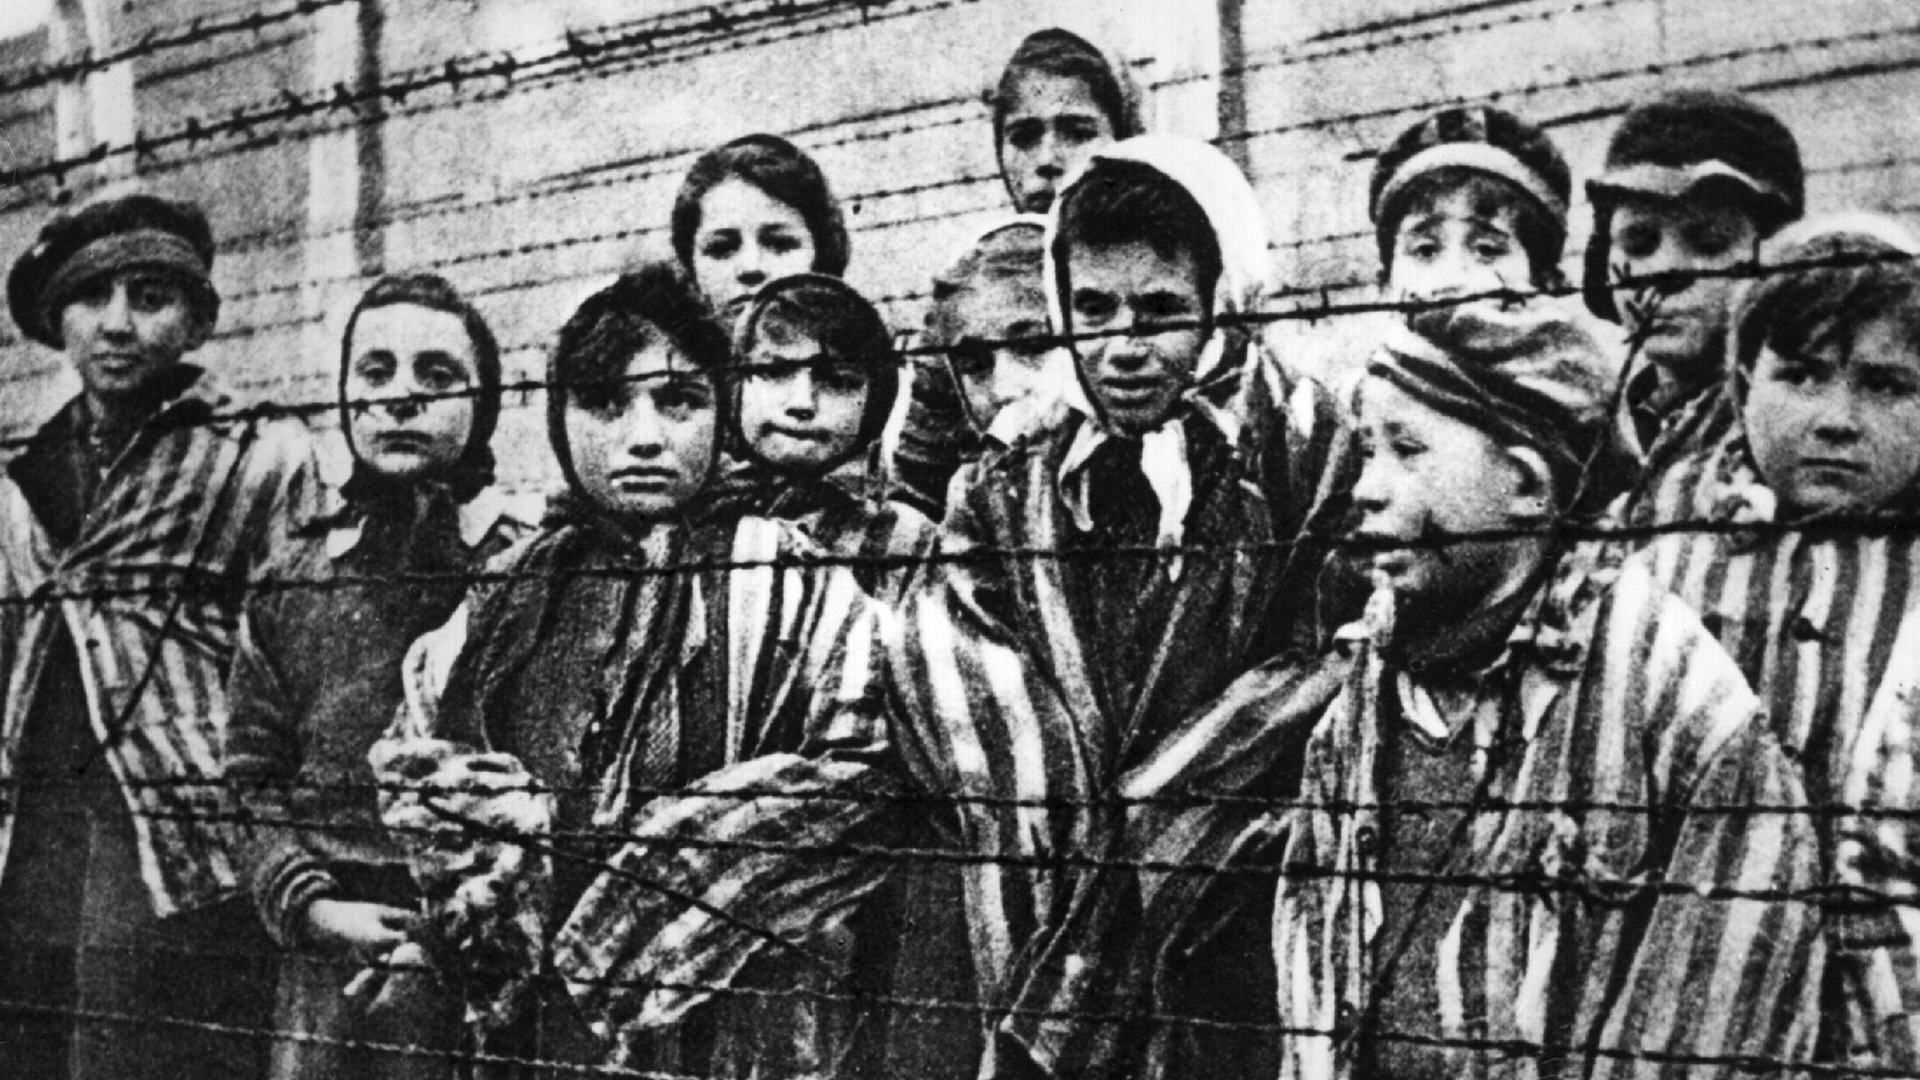 The 94 Year Old Bookkeeper Of Auschwitz Is Jailed For 4 Years For Helping Murder 300,000 Jews a 101 auschwitz 150126